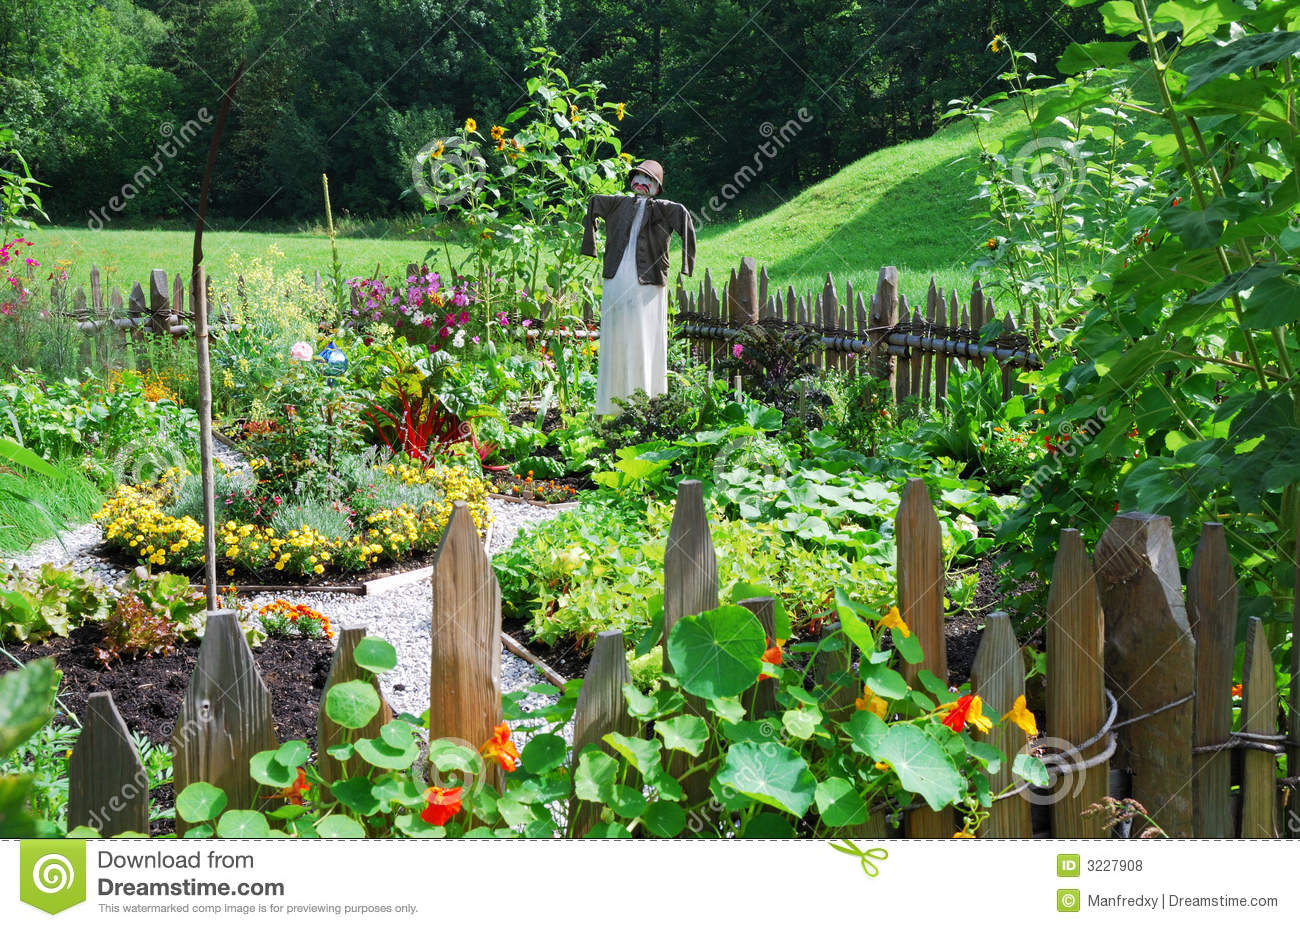 Vegetable Garden Stock Photo. Image Of Scarecrow, Herbage